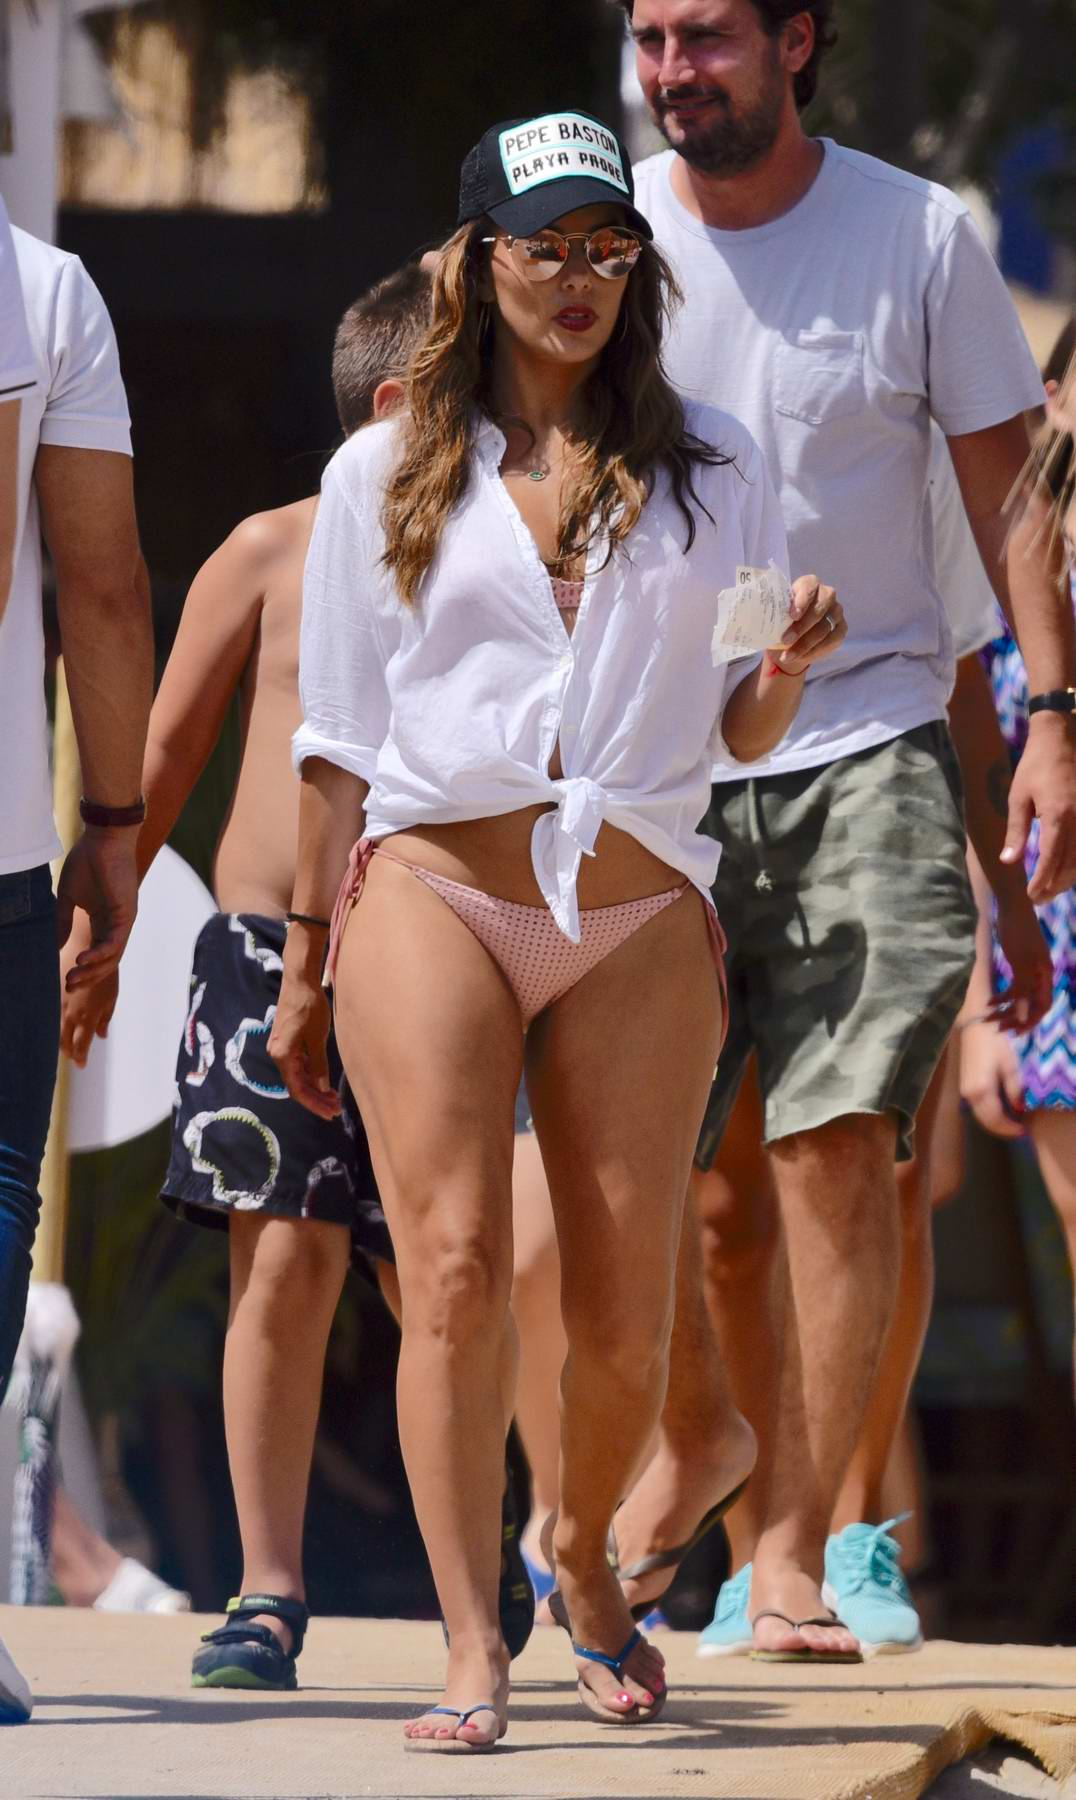 Eva Longoria hits the beach in a bikini with husband Antonio Baston in Marbella, Spain